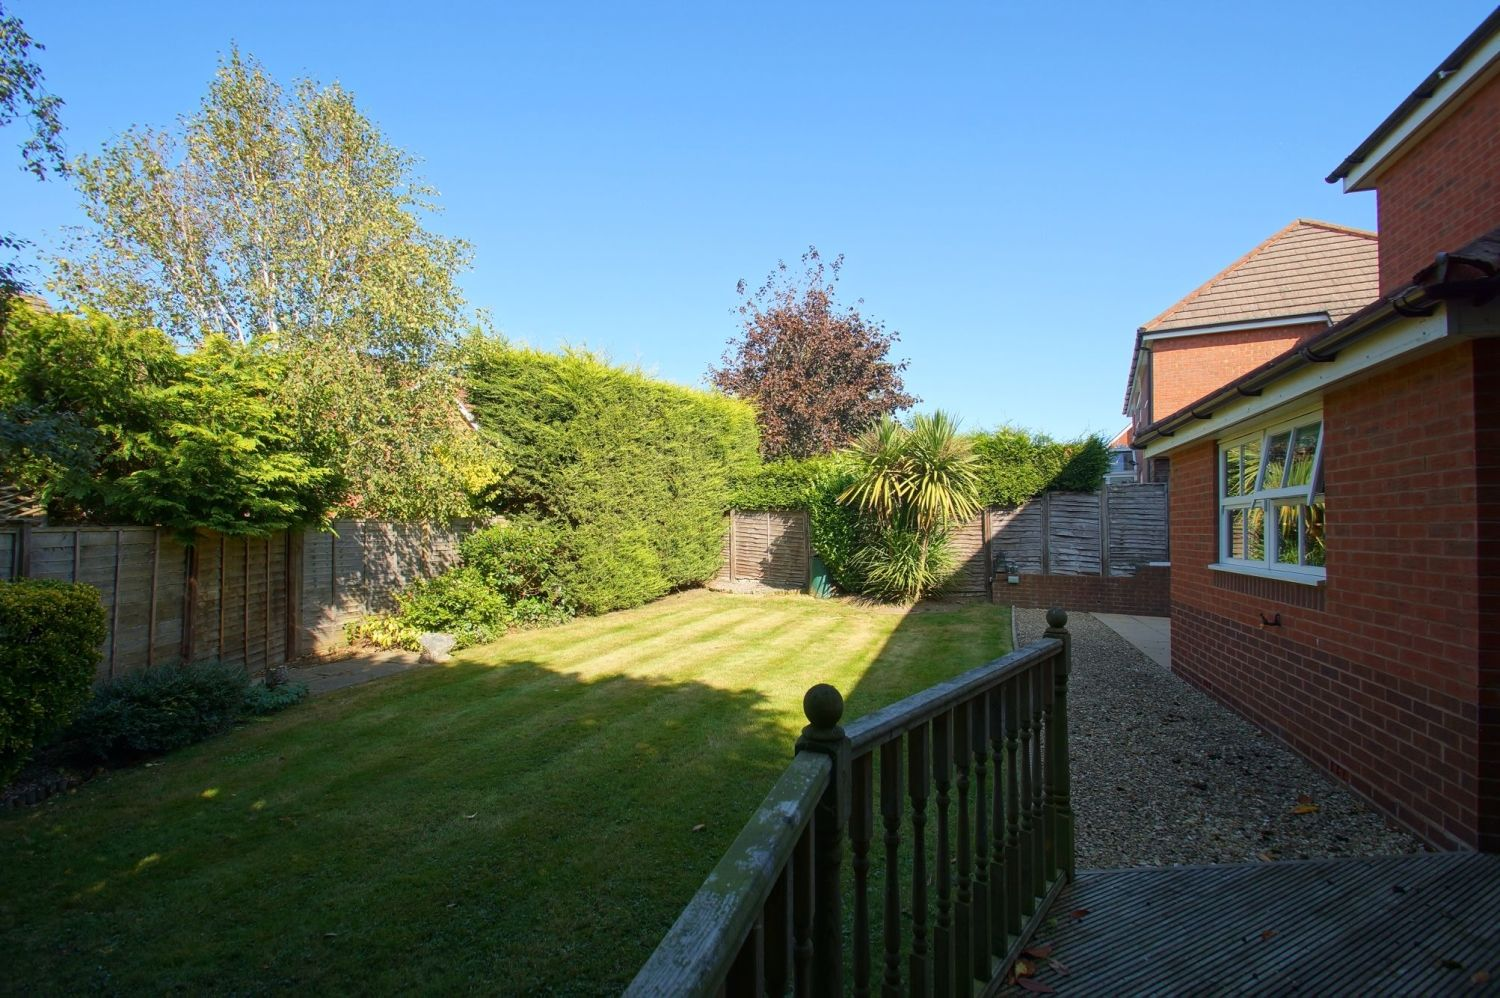 4 bed detached for sale in Acre Lane, Webheath  - Property Image 23